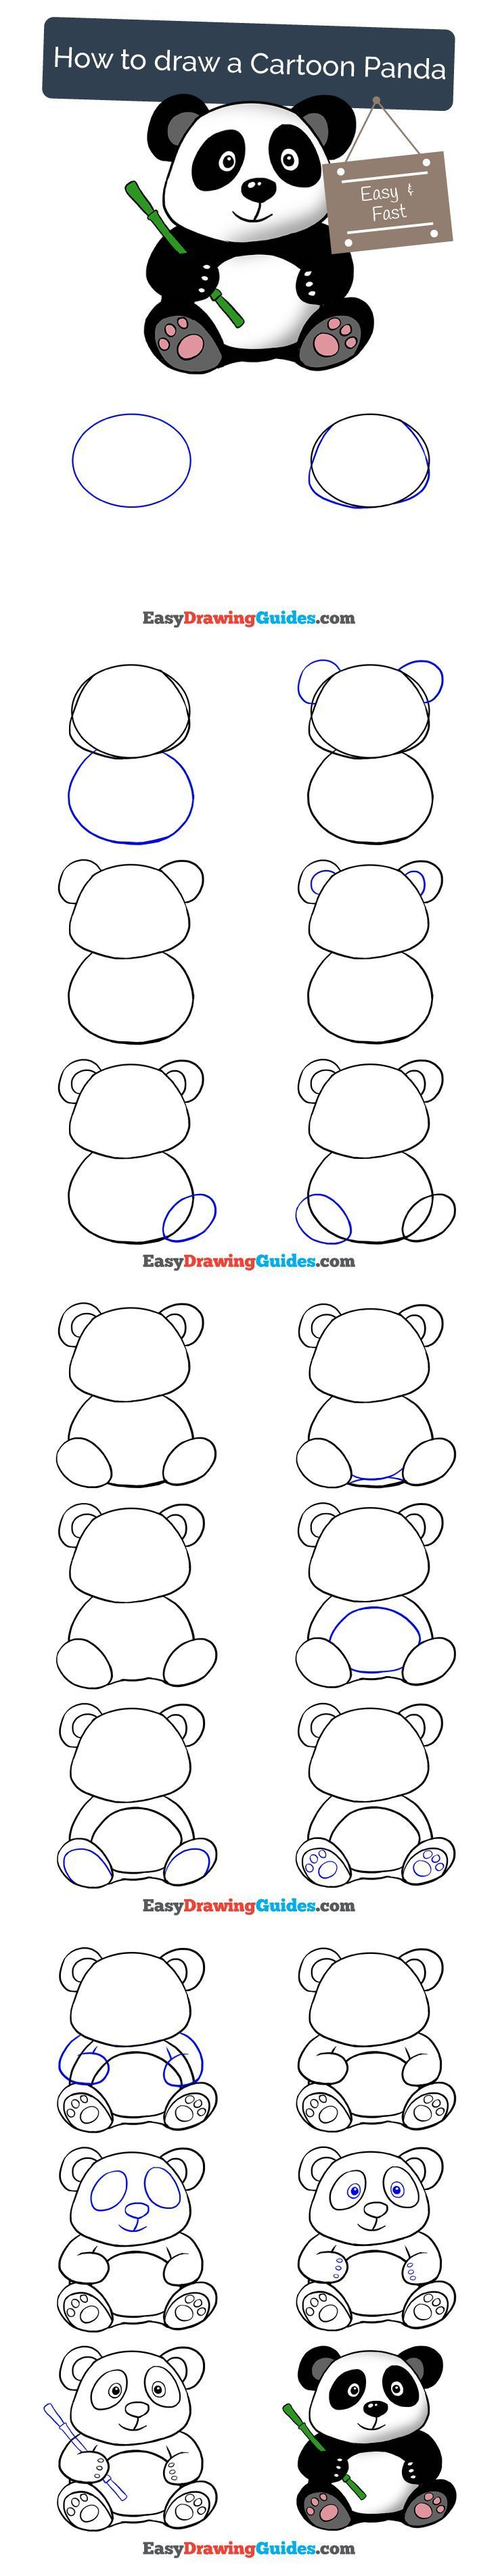 how to draw a cute cartoon panda in a few easy steps cartoon